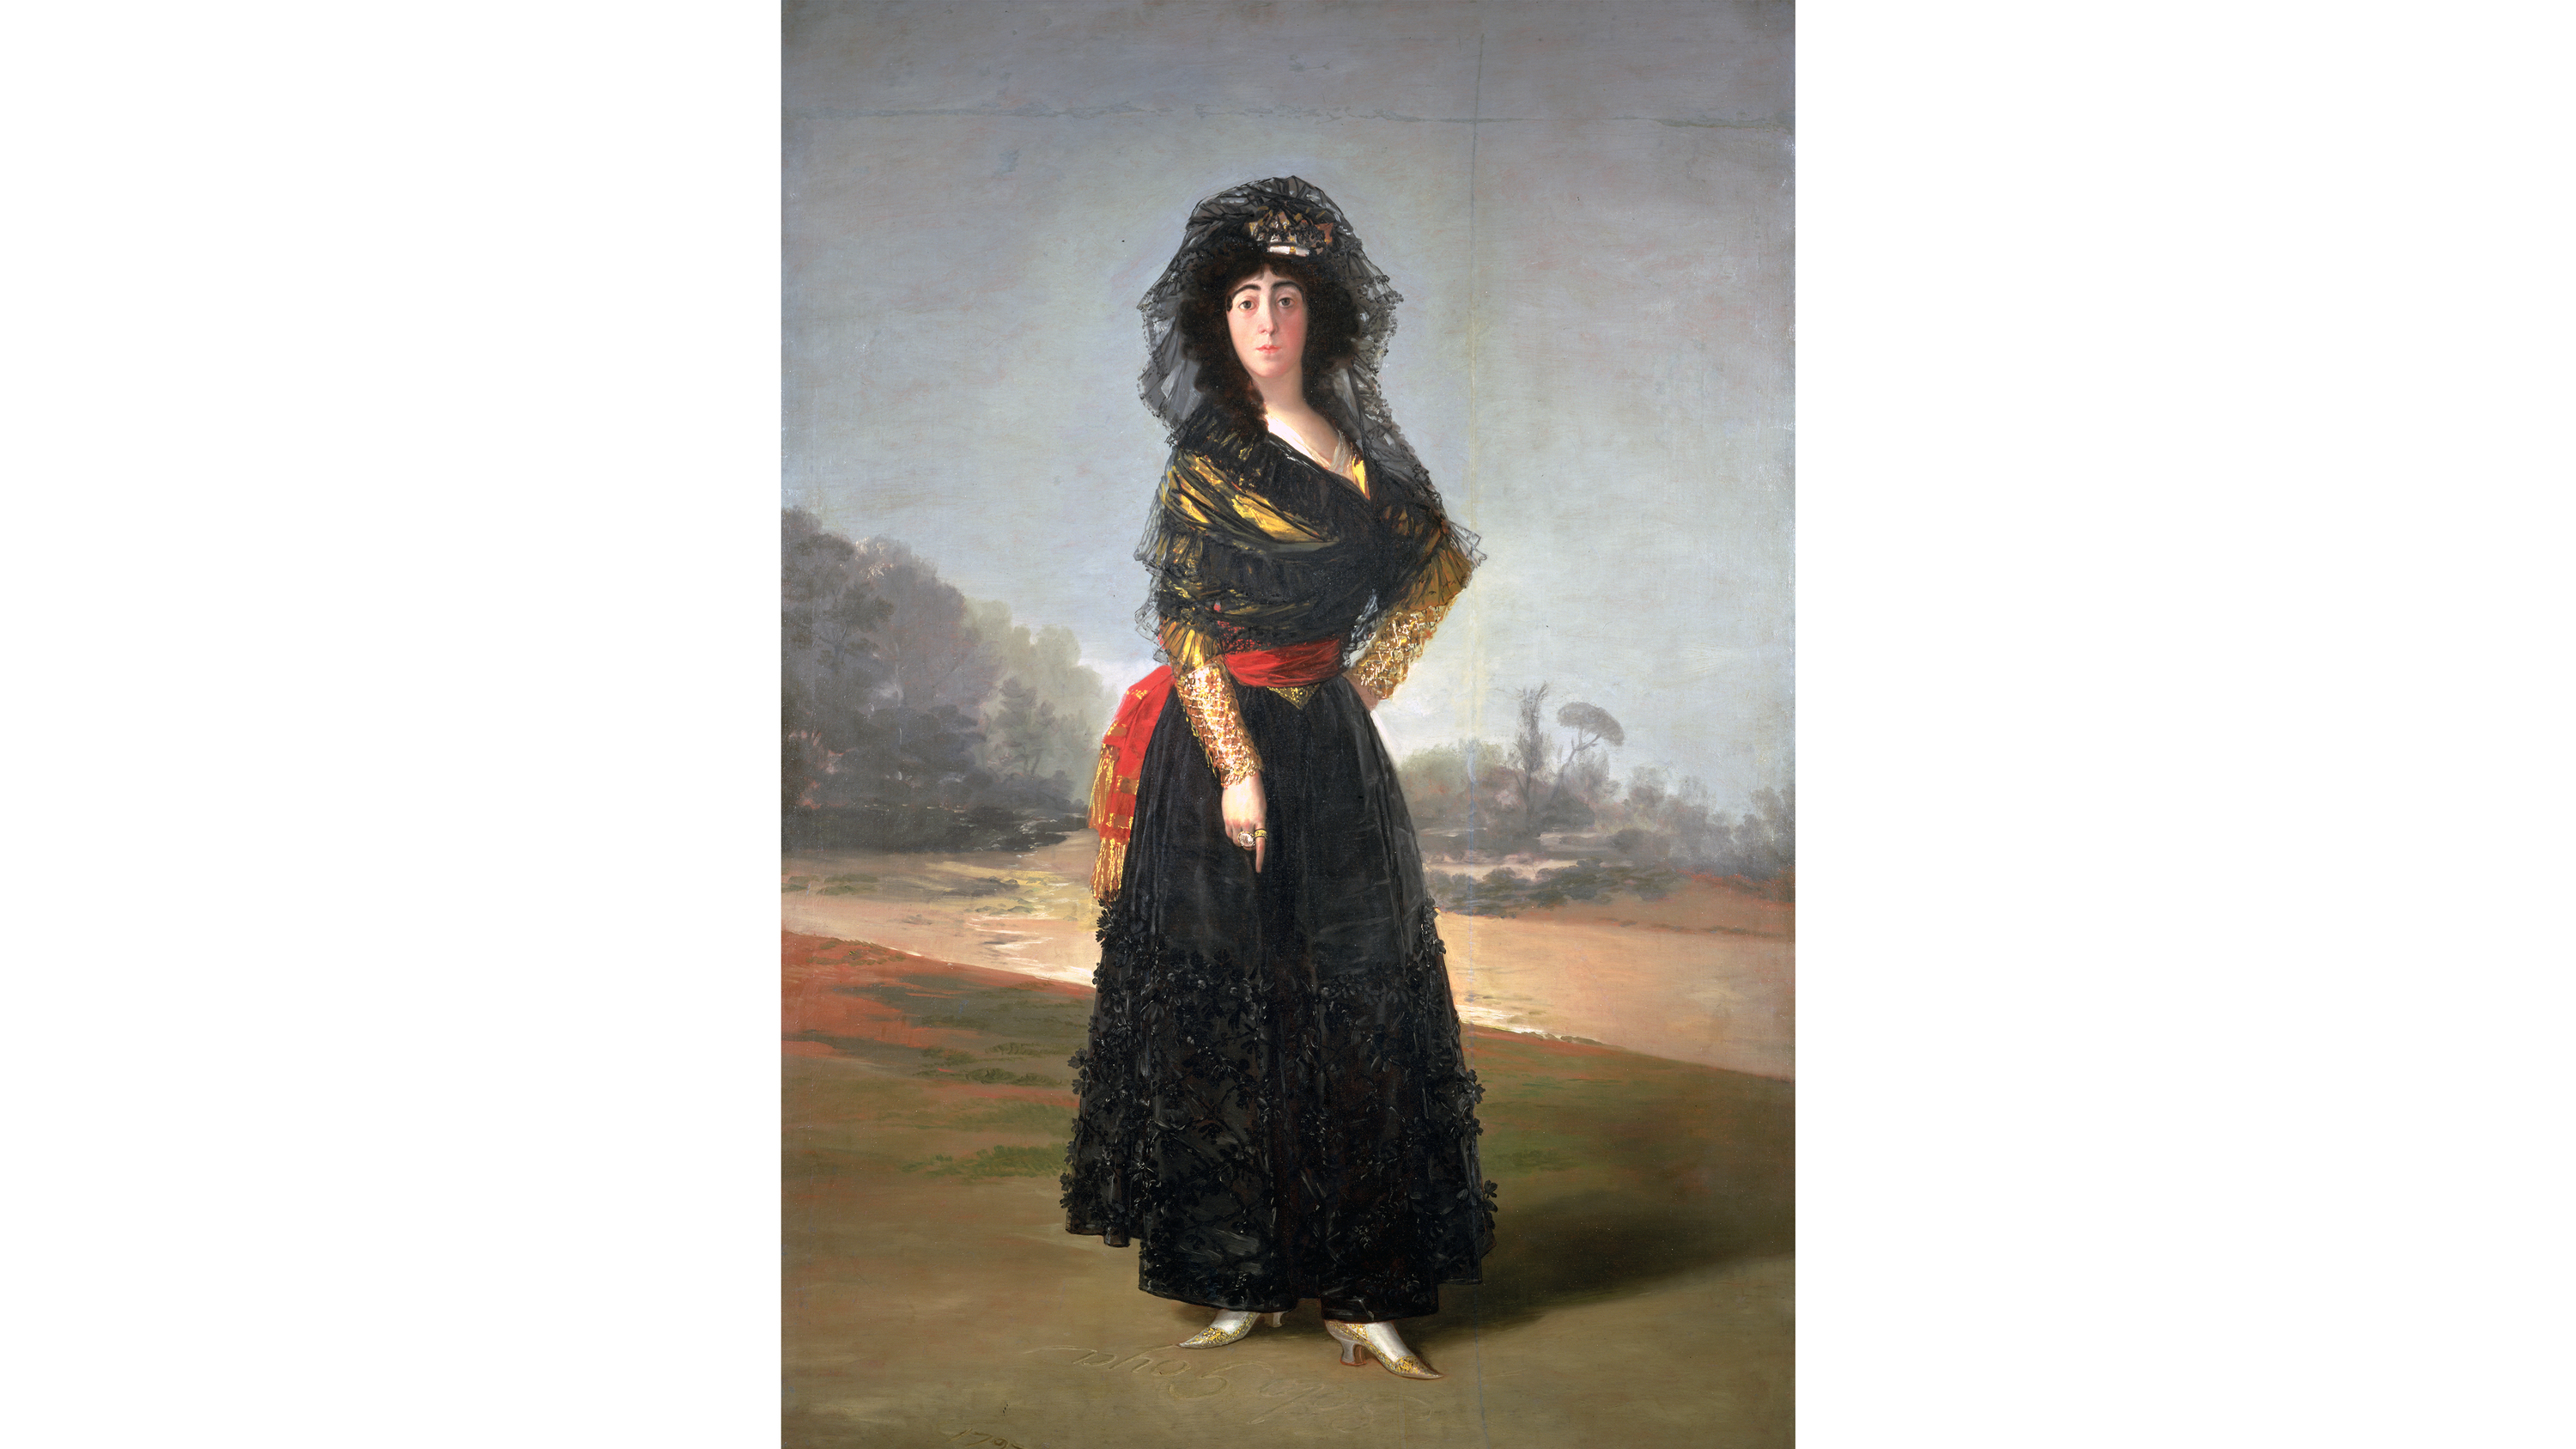 The Duchess of Alba (1797), Francisco Goya